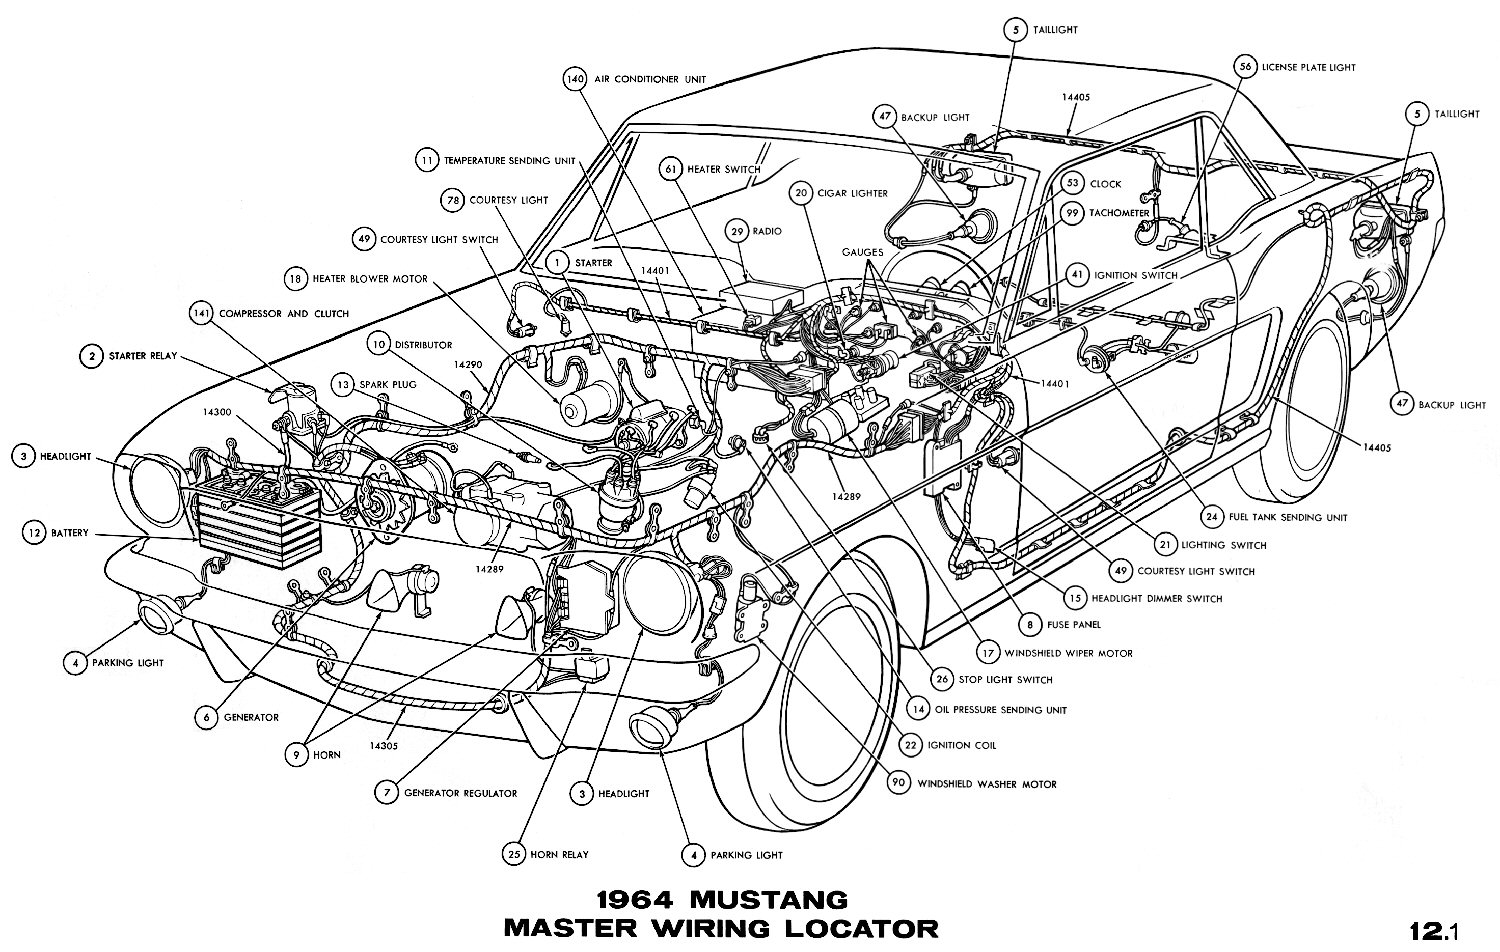 Mustang       Wiring    and Vacuum    Diagrams    Archives  Average Joe Restoration